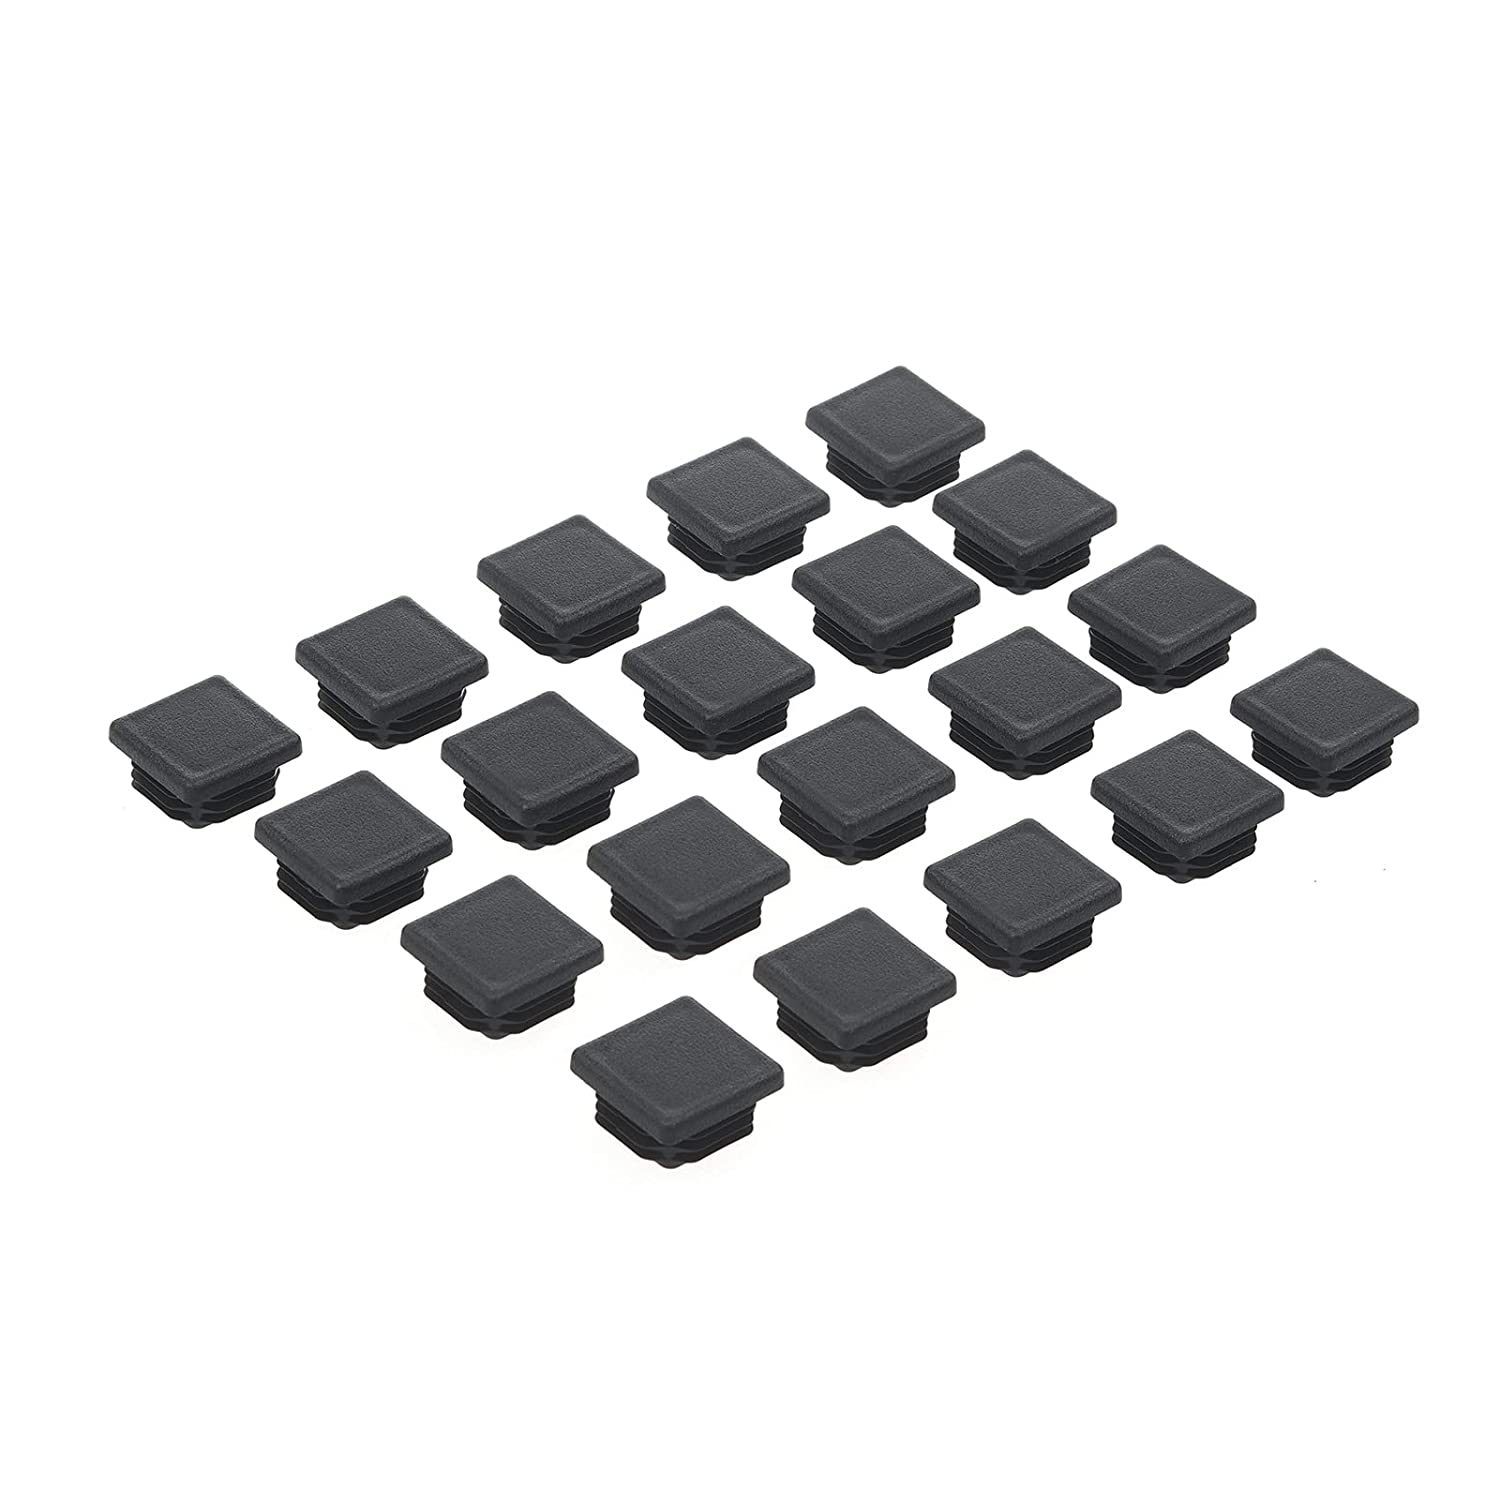 """3/4 Inch Square Tubing End Cap, 20Packs Plastic Plug 3/4"""" x 3/4"""", Durable Furniture Chair Glide Cover Insert Plugs, Great End Caps for Pipe Tube, Fencing Post, Fitness Equipment and More"""